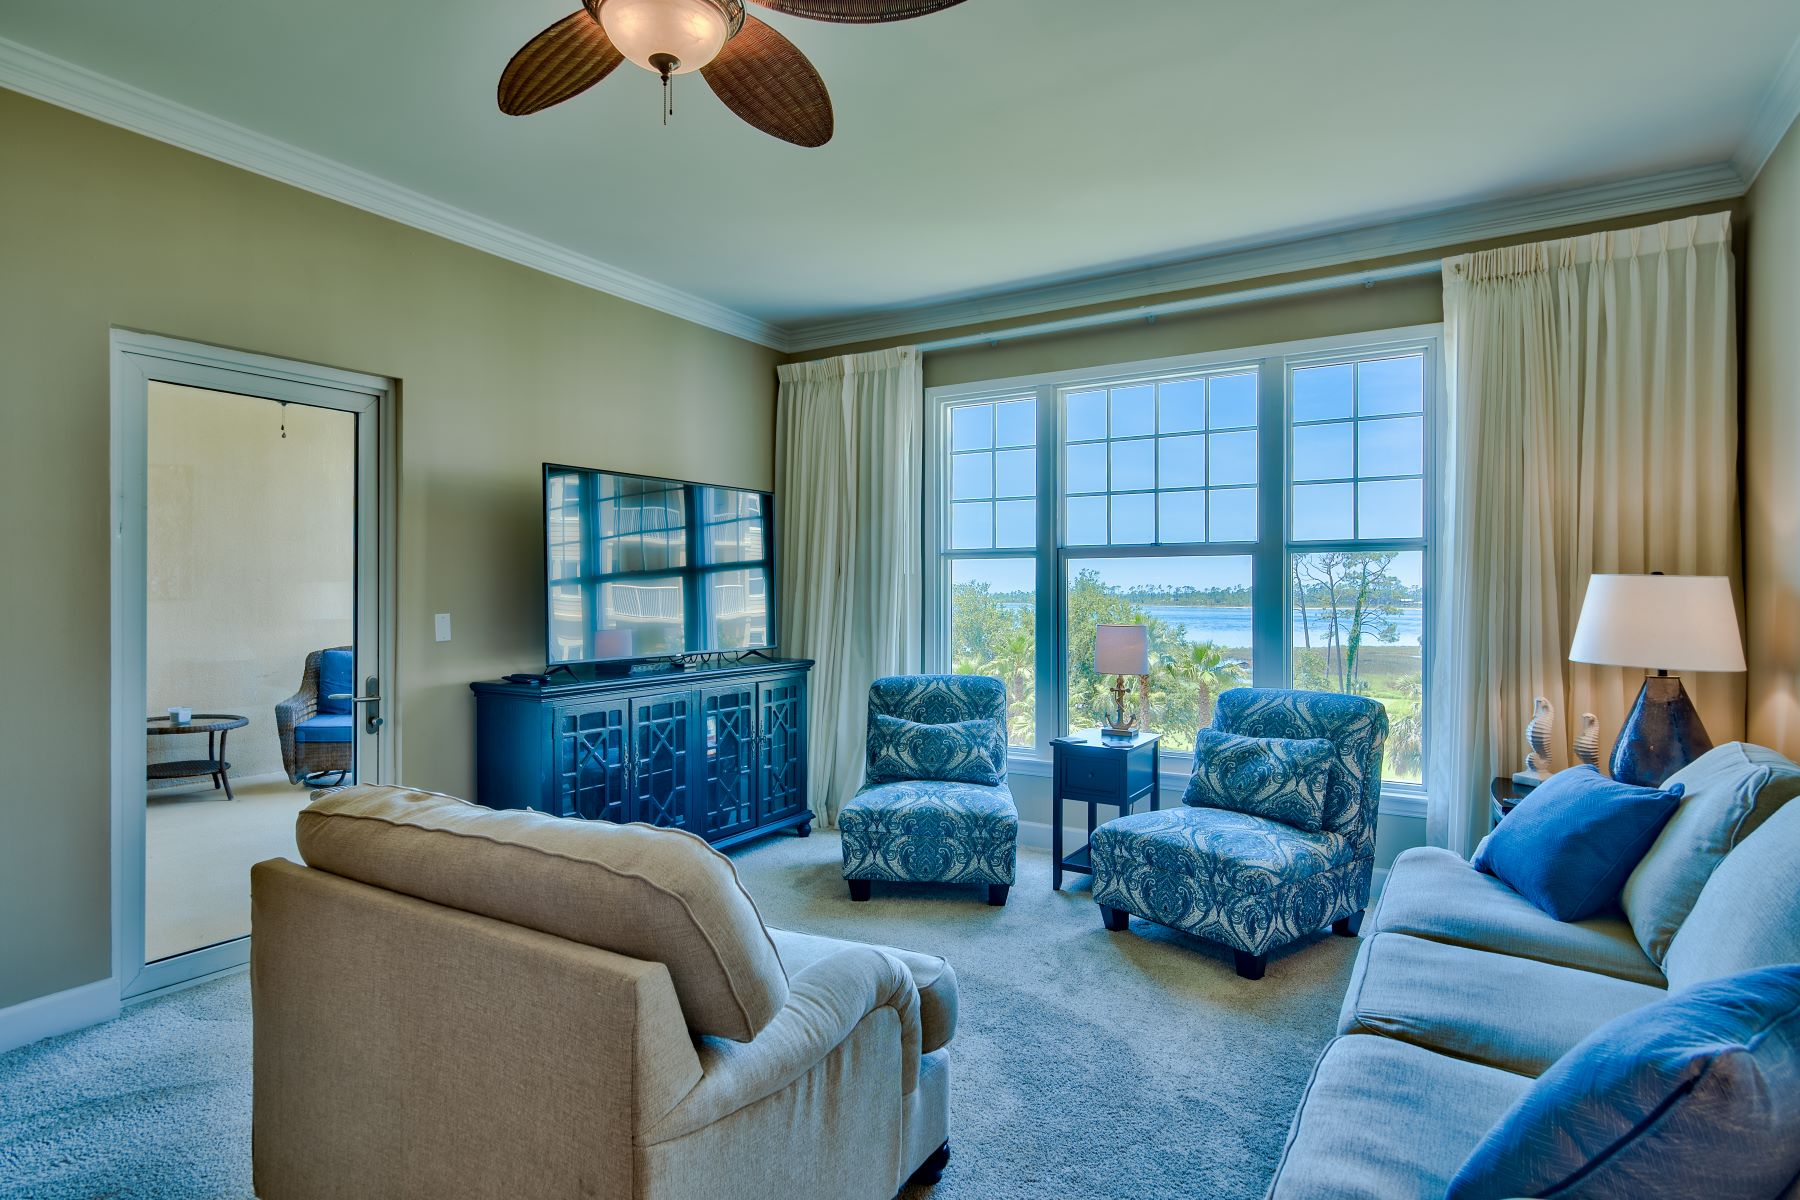 Condominiums for Sale at Bay Front Condo in Luxurious Resort Style Setting 4100 Marriott Drive 411, Panama City Beach, Florida 32408 United States